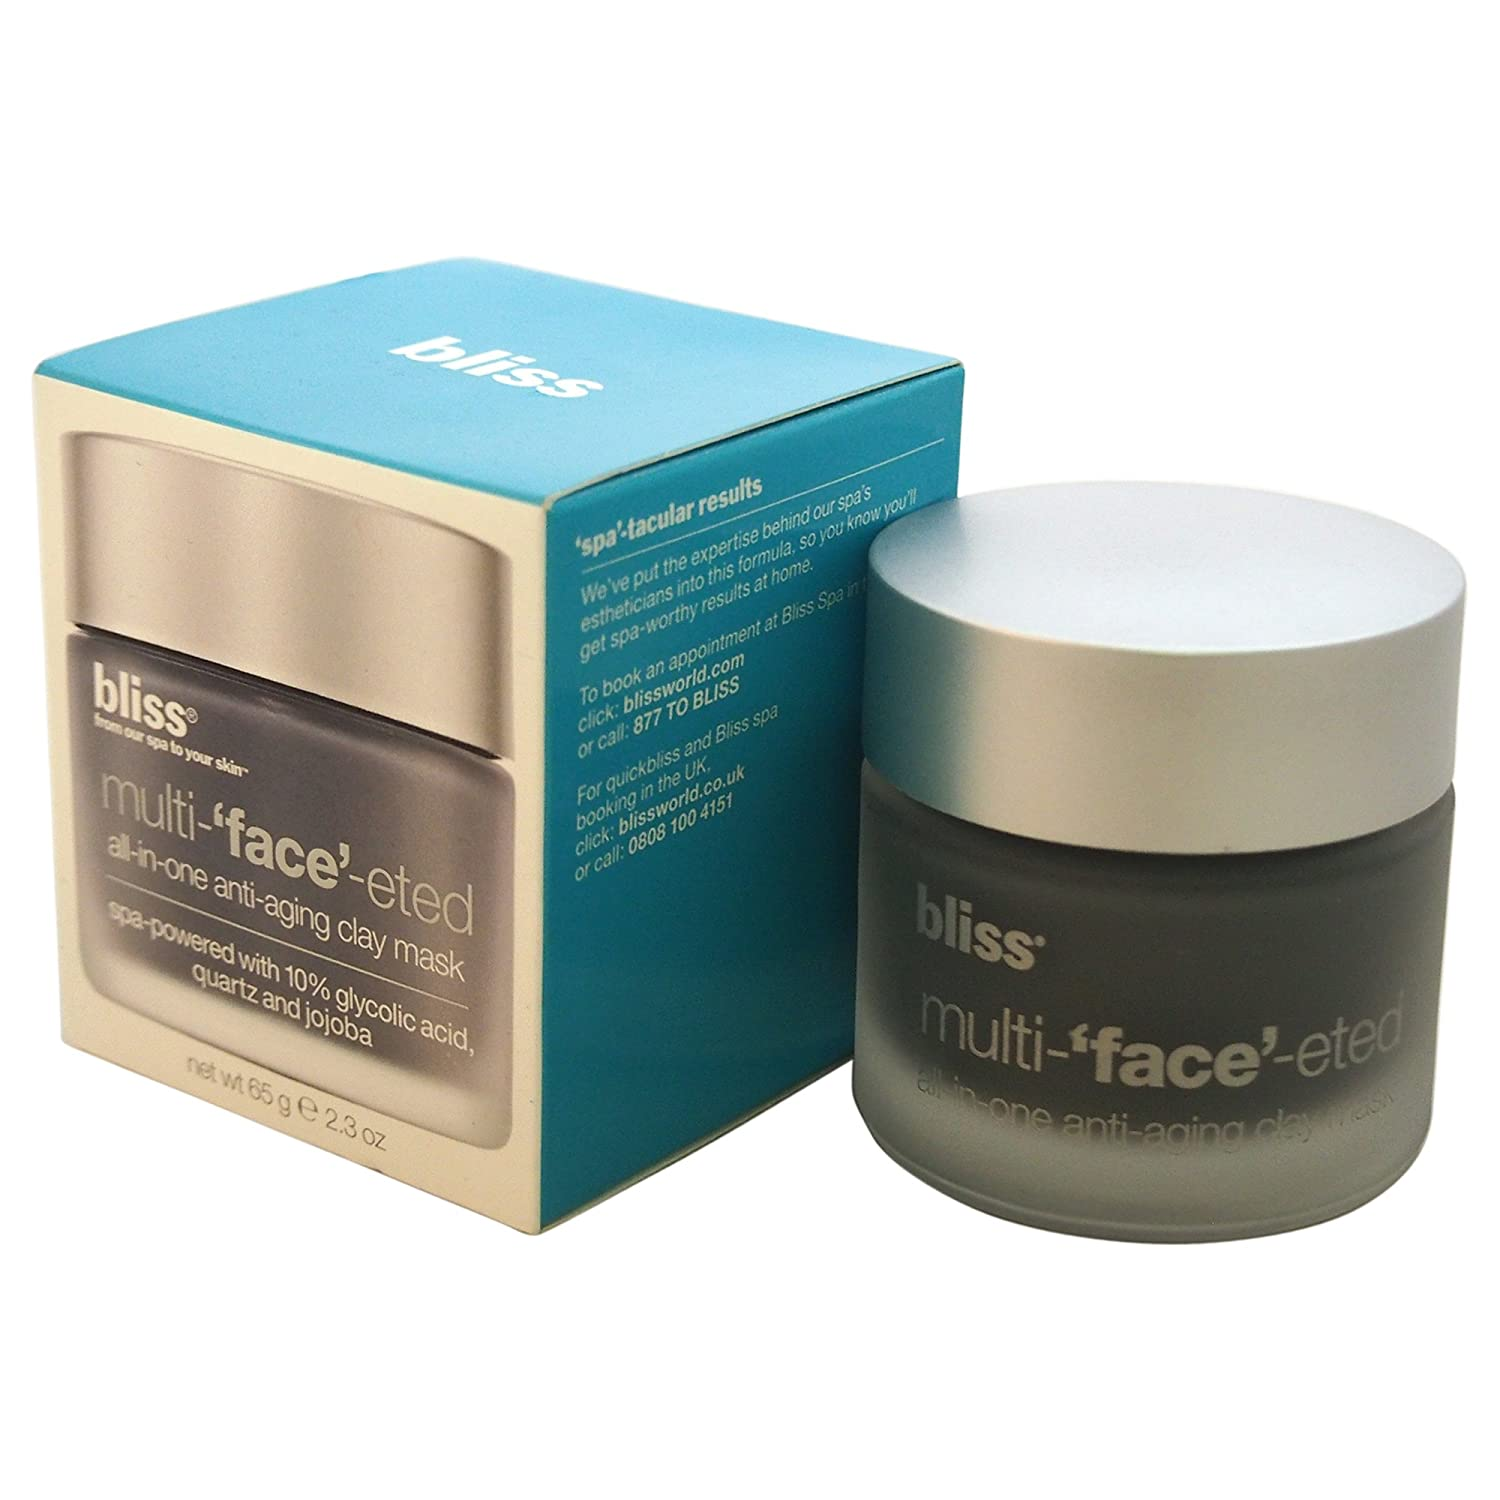 7aa47544ee284 bliss Multi-'Face'-eted All-In-One Anti-Aging Clay Mask